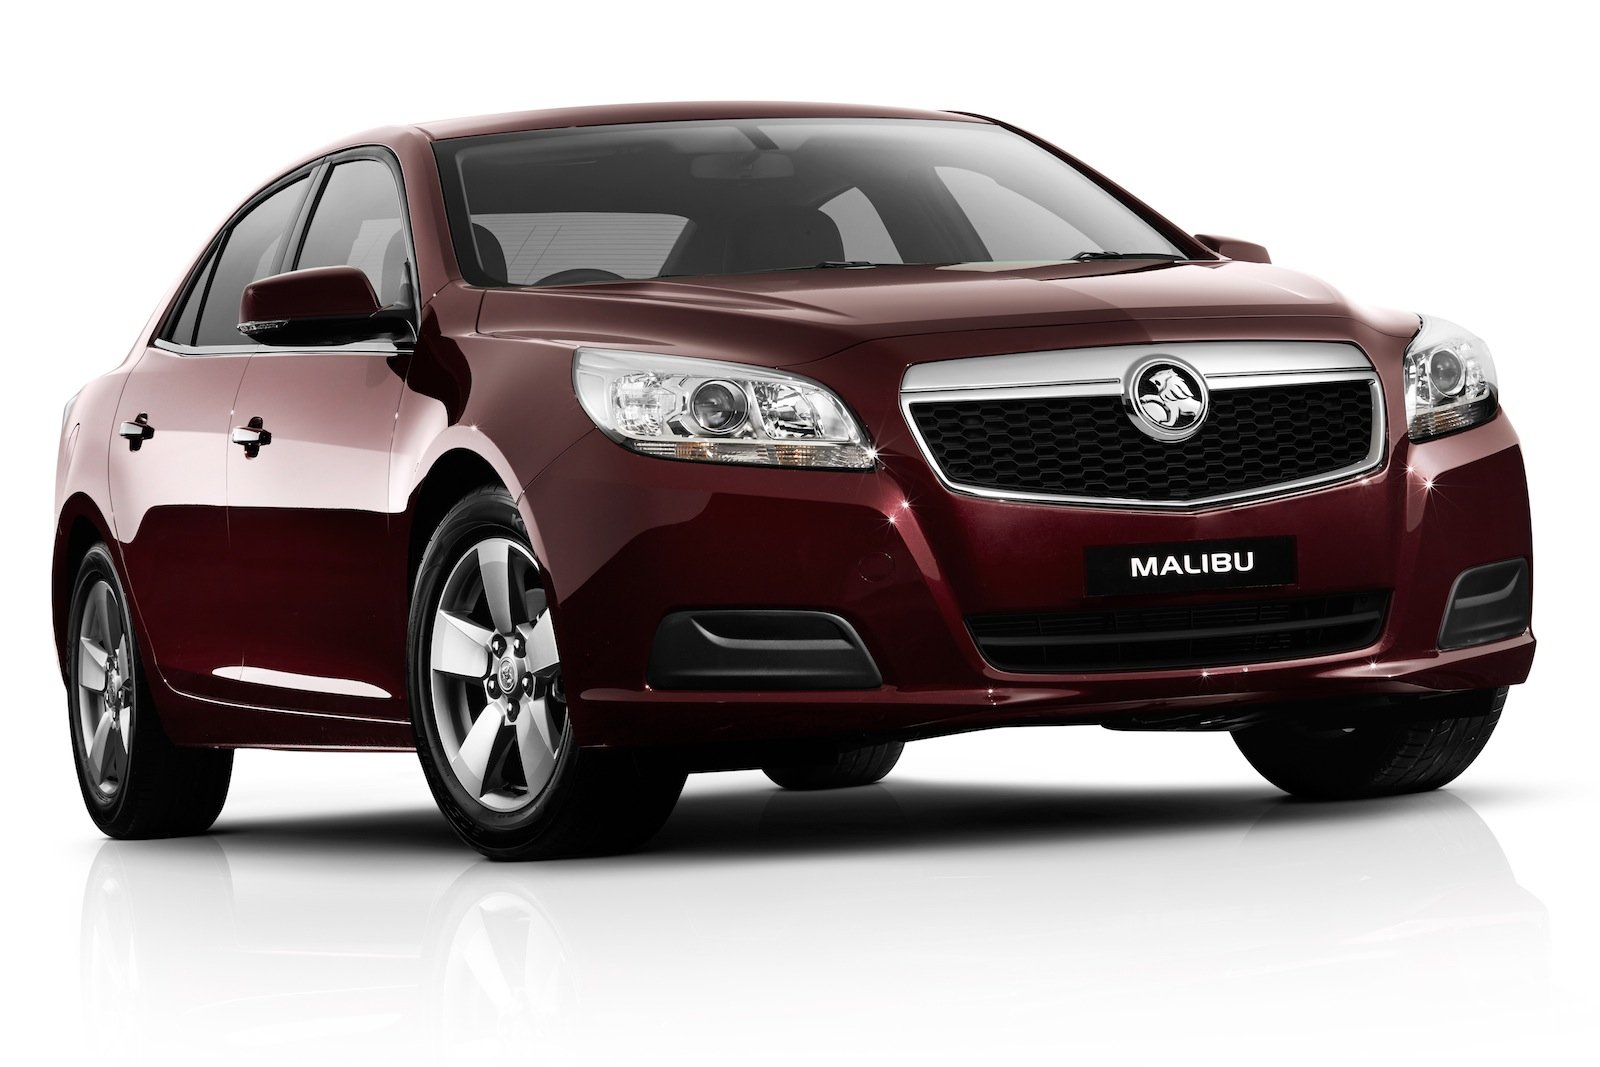 Holden Malibu priced from $28,490 - Photos (1 of 11)